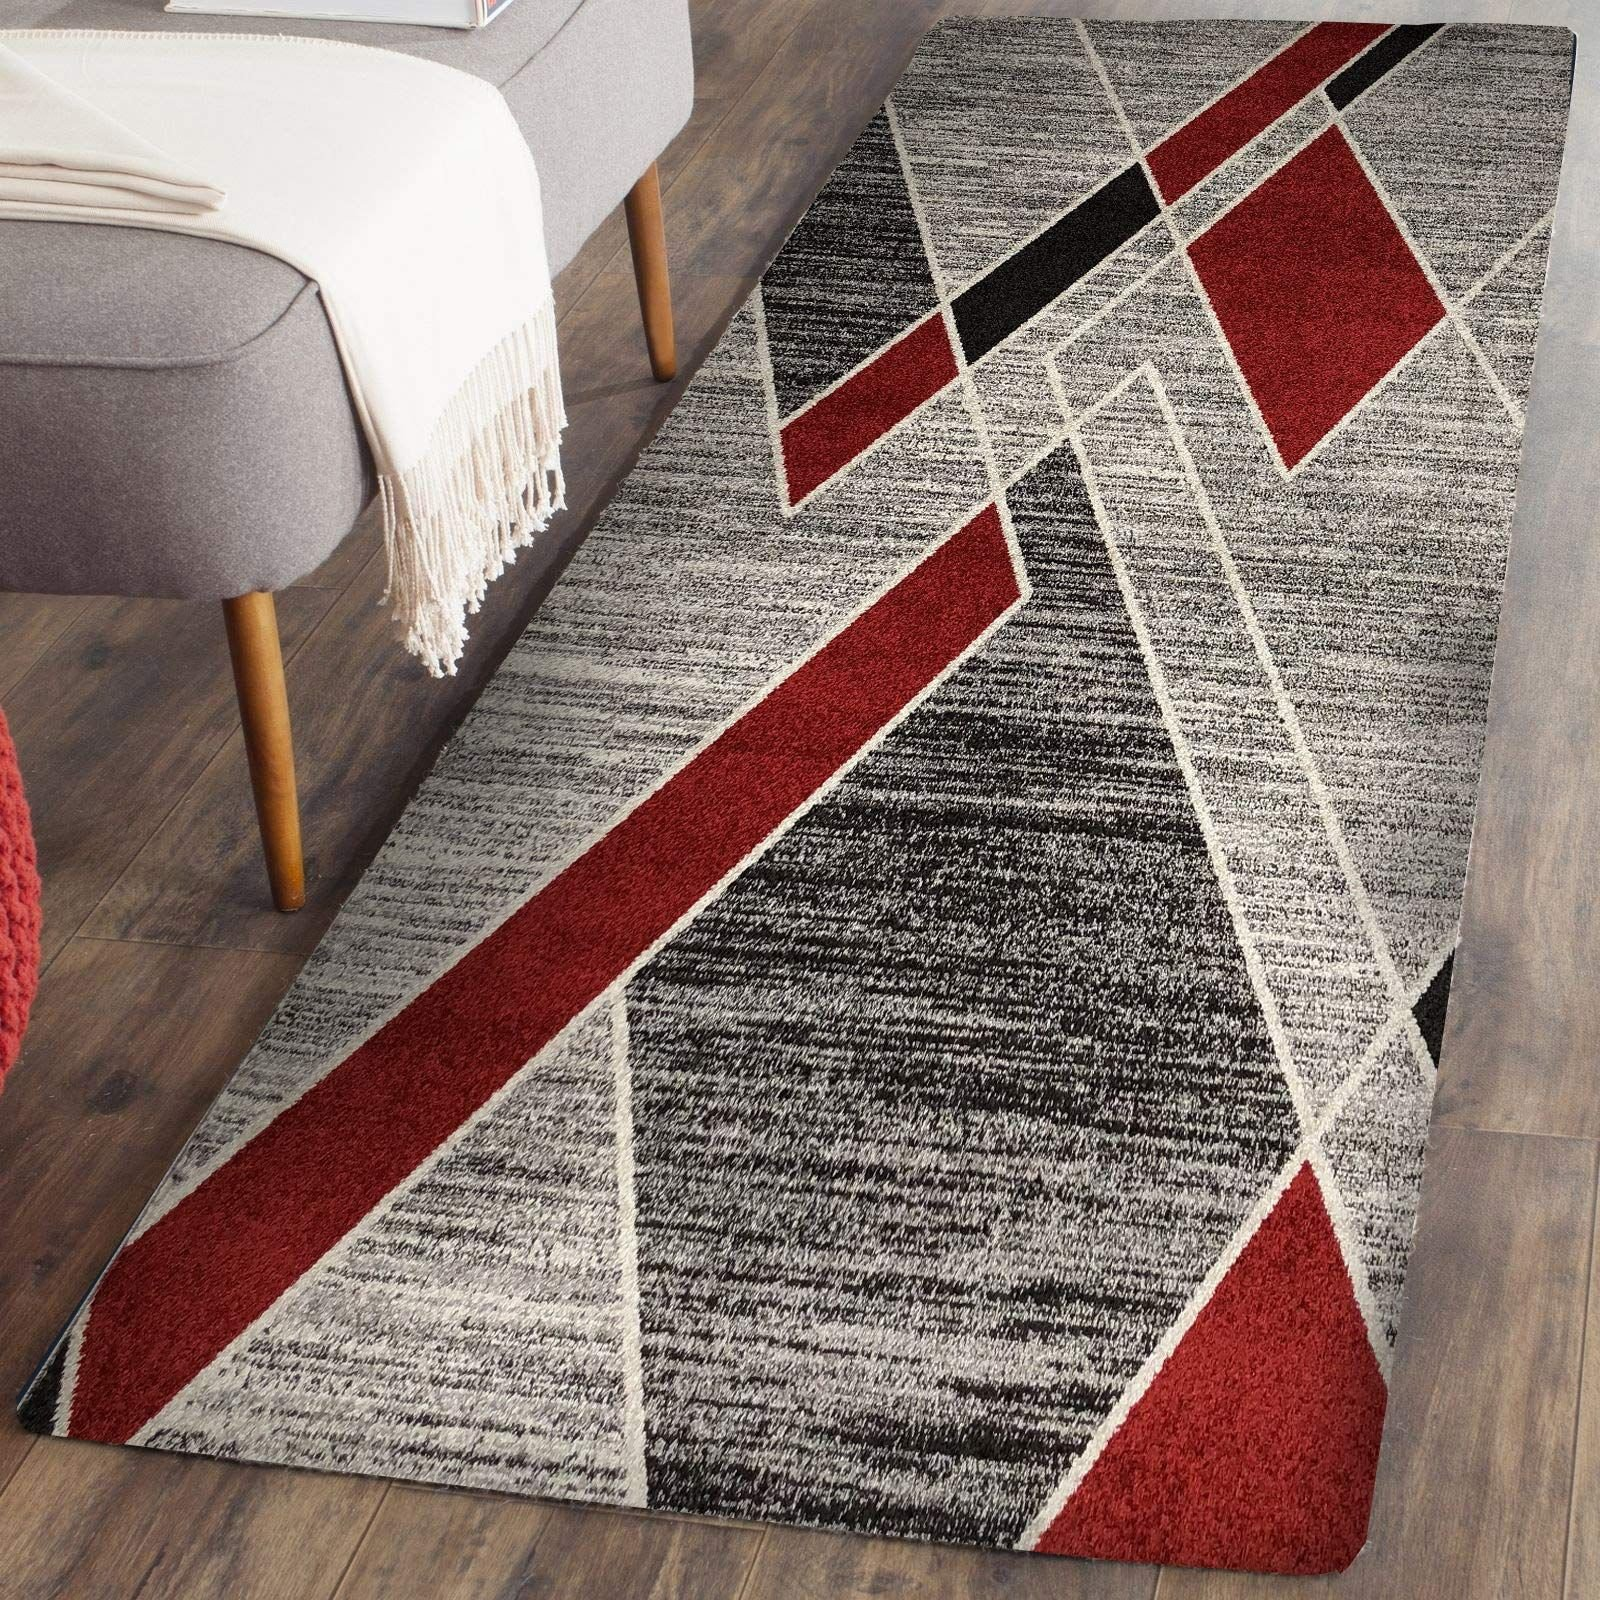 Area Rugs for Bedroom Unique Prestige Decor area Rugs 2x5 Living Room Rug Carpet Grey Red